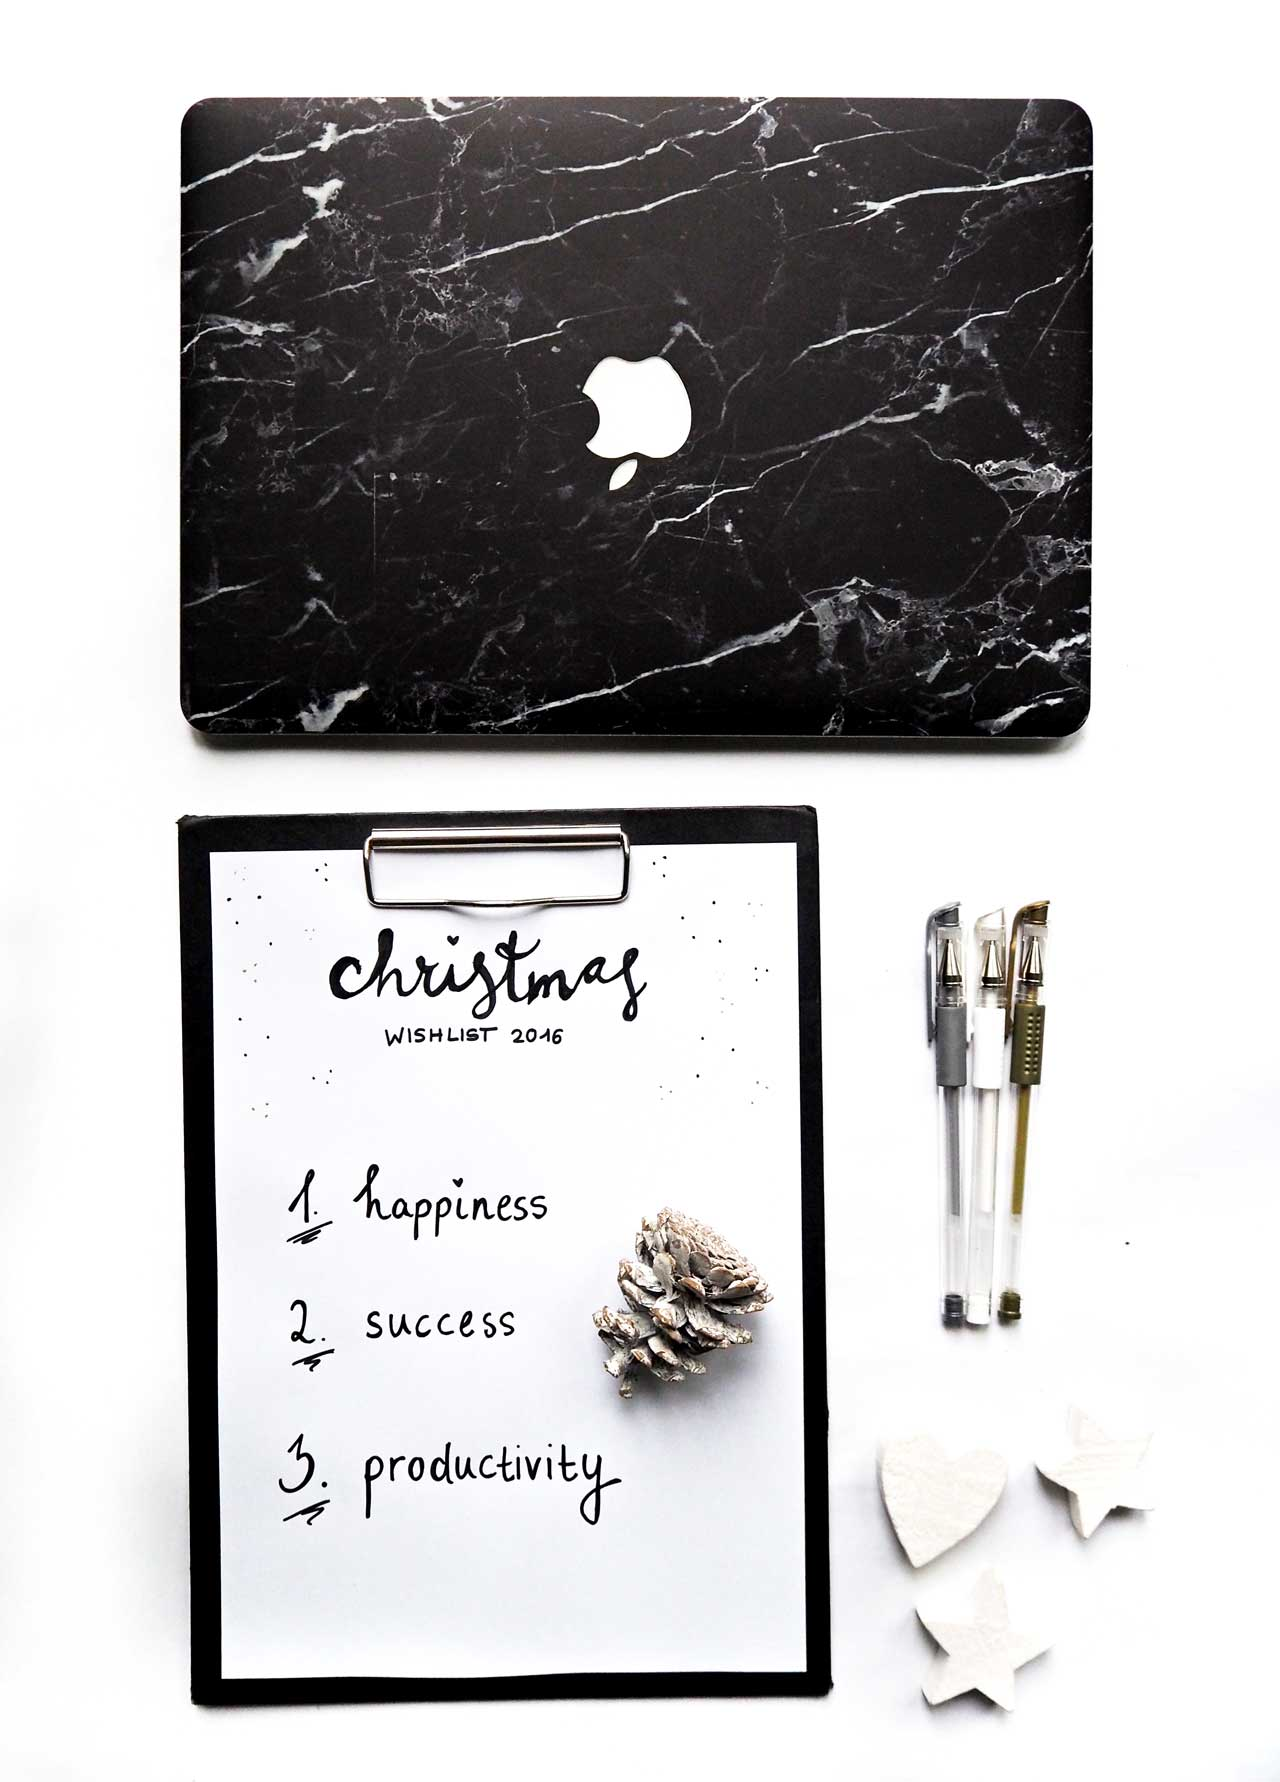 caseapp_christmas_happiness_productivity_christmas wishlist